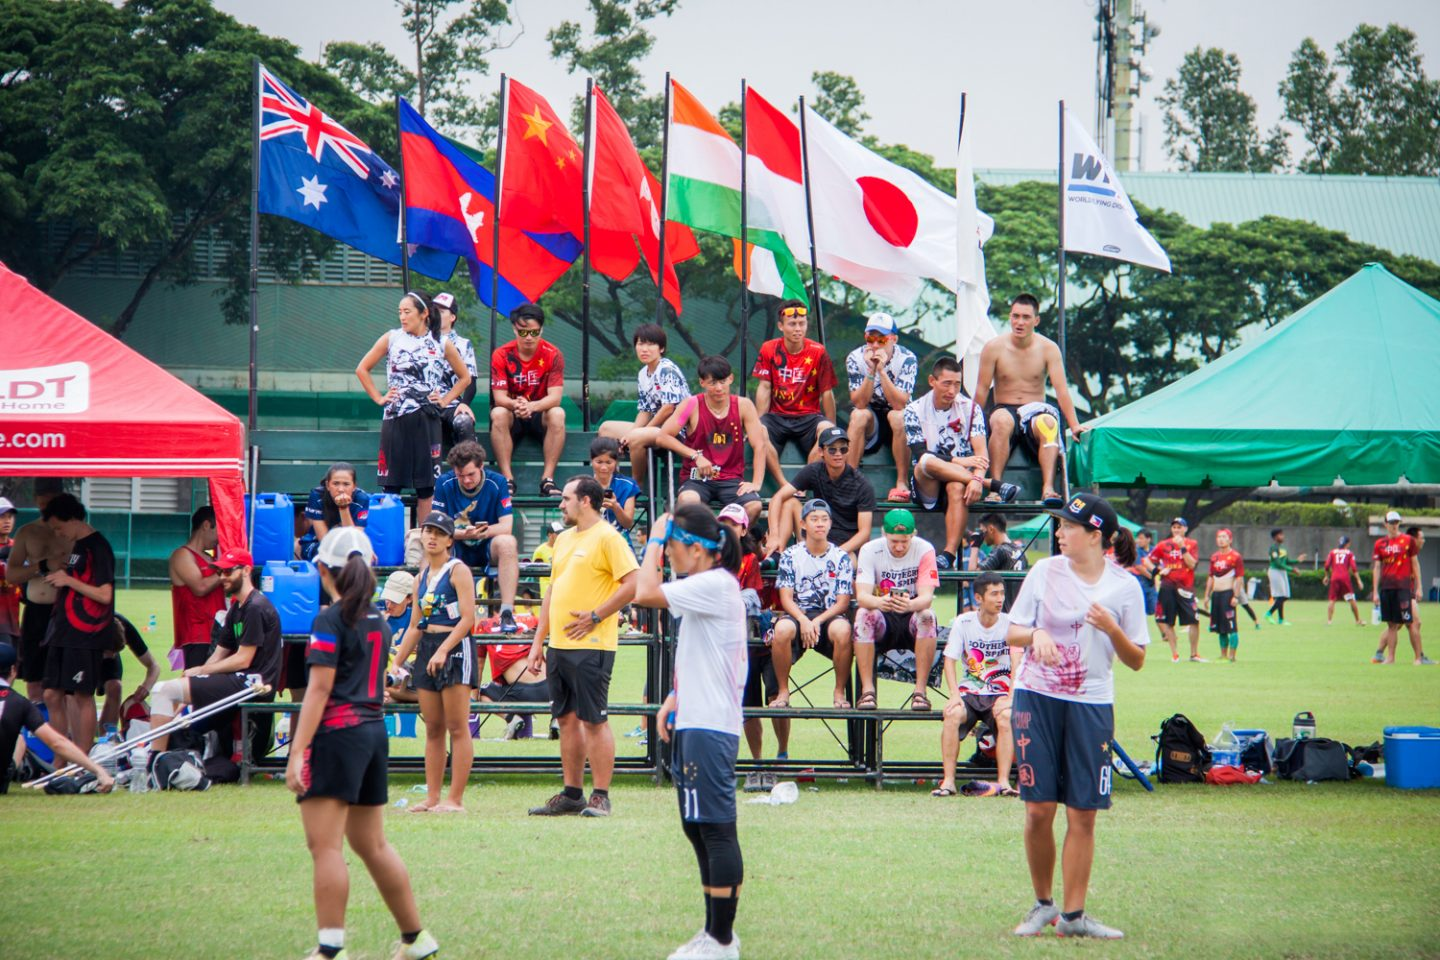 Chinese female ultimate frisbee athletes compete in a tournament with international flags flying in the background of the bleacher seating.